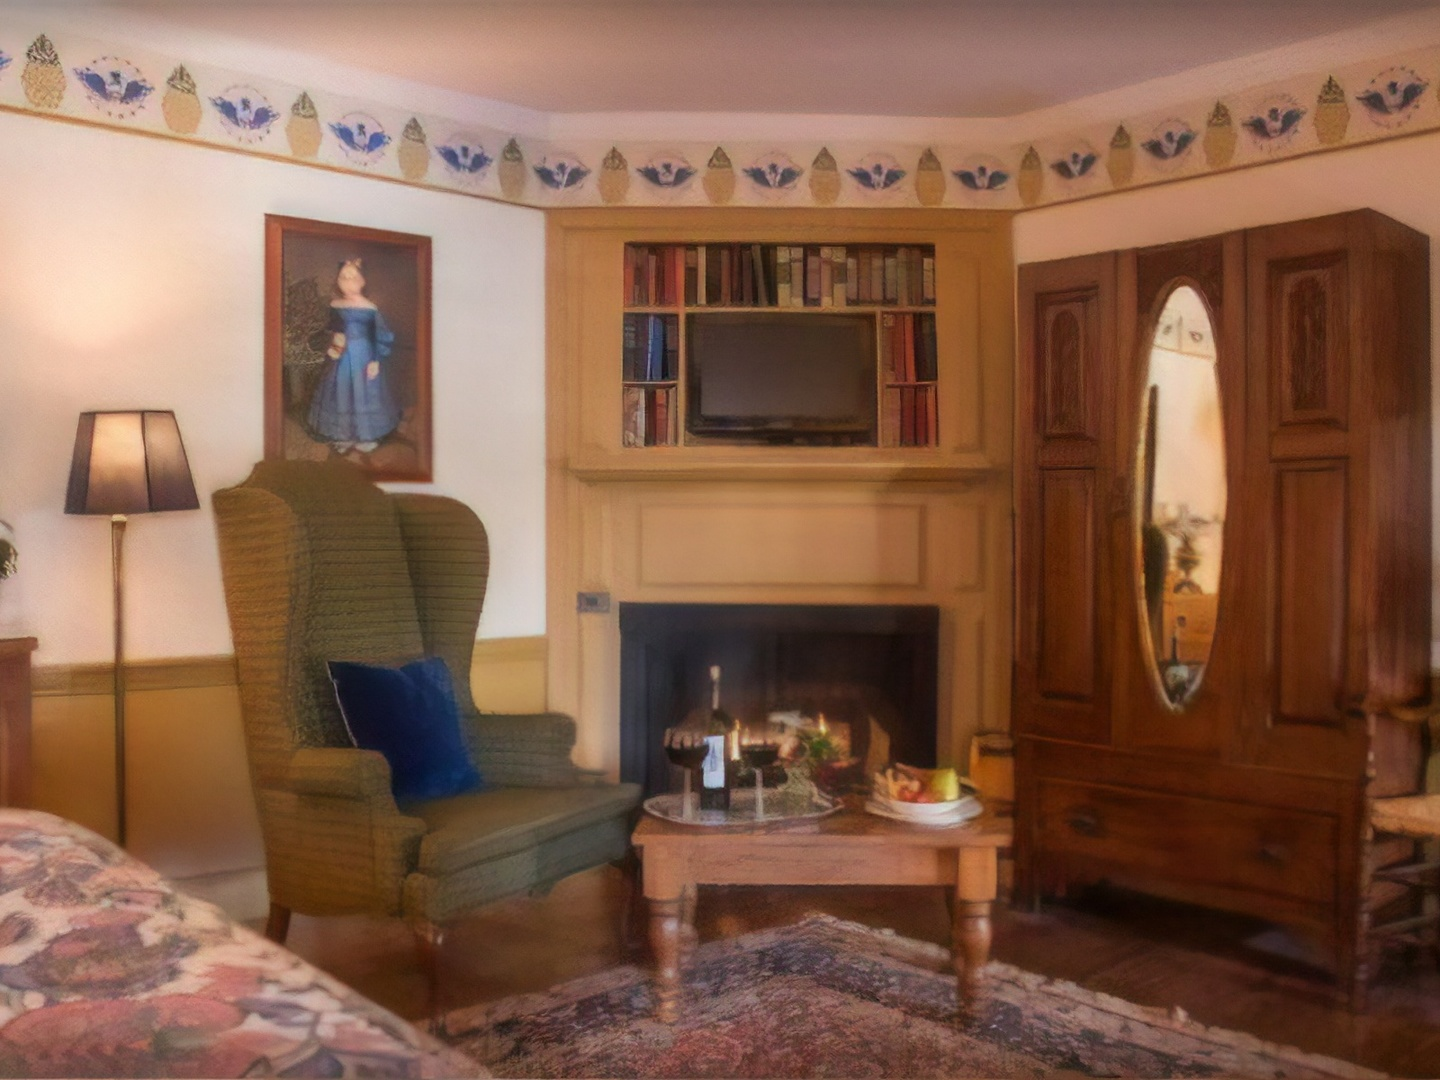 A living room filled with furniture and a fireplace at Asa Ransom House.